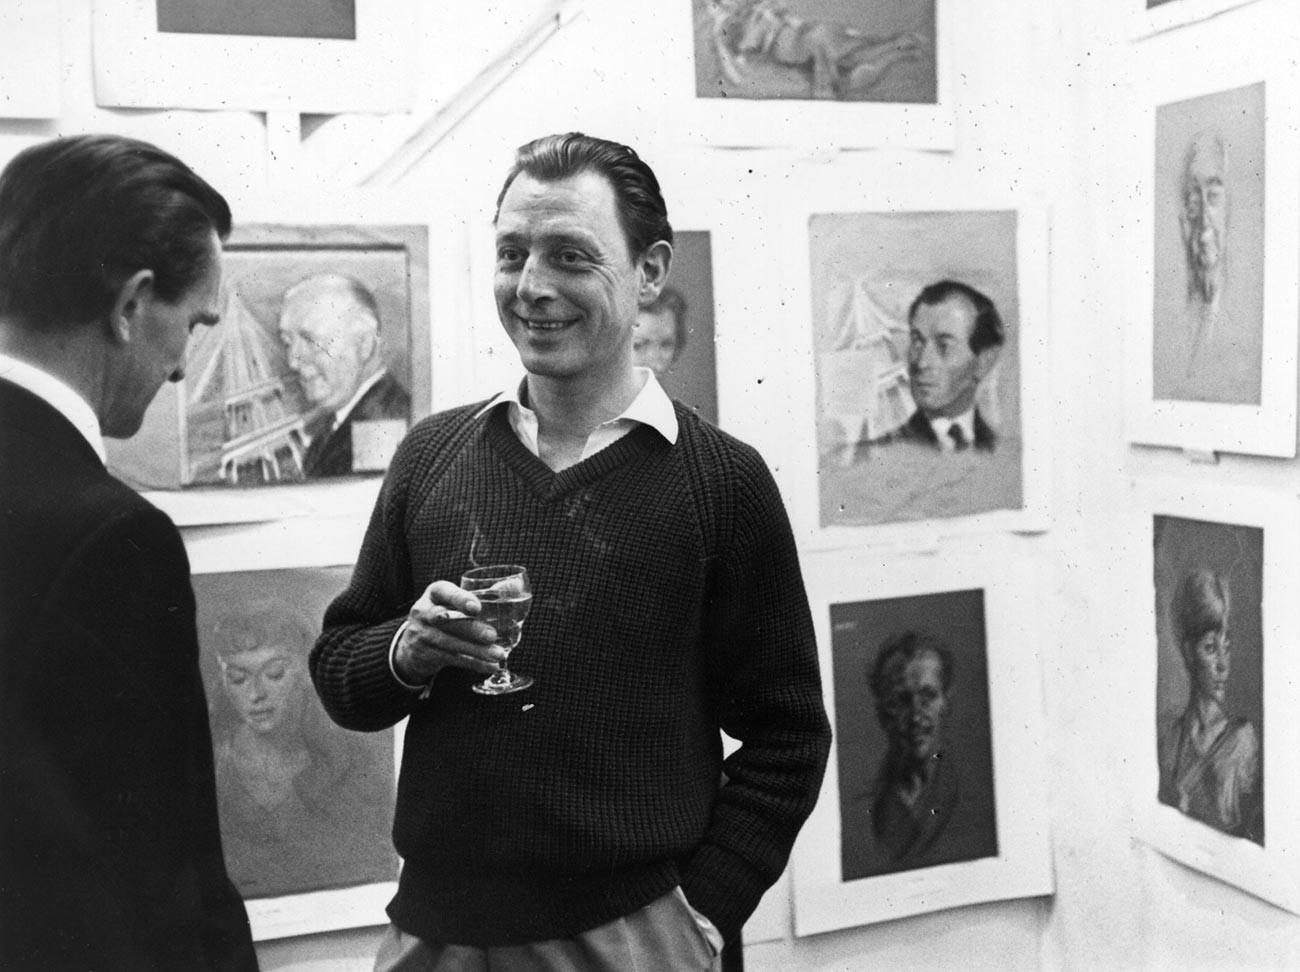 Dr Stephen Ward, the society osteopath involved in the Profumo Affair, at an art gallery.